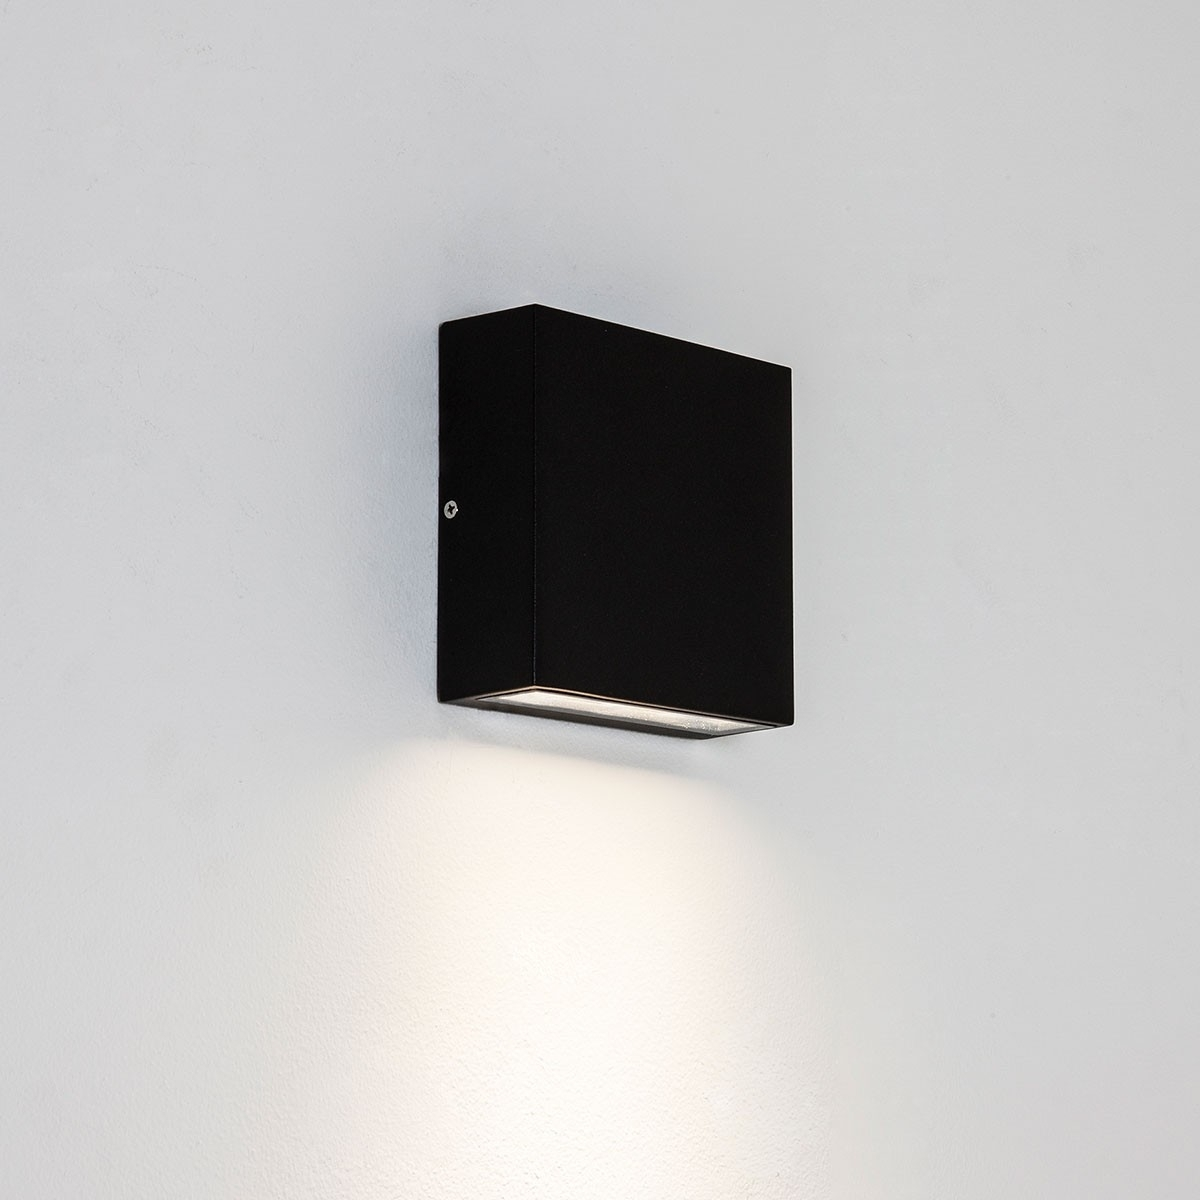 Astro Elis Single Black Outdoor Led Wall Light At Uk Electrical With Regard To Black Outdoor Led Wall Lights (#1 of 15)